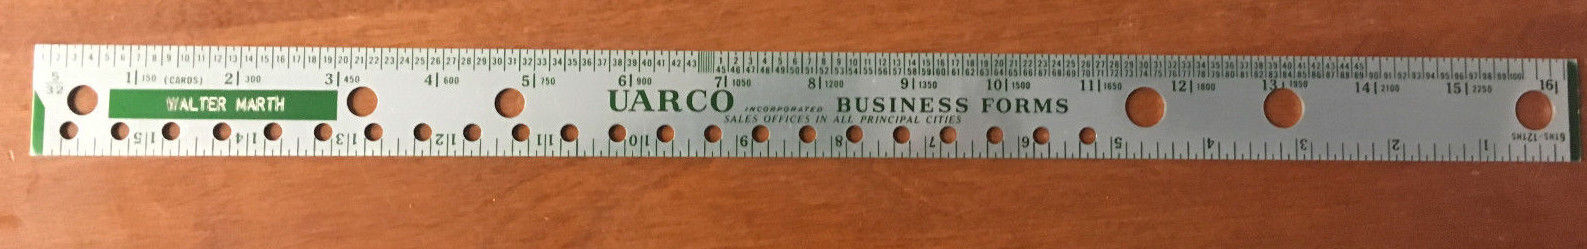 Uarco Business Forms Ruler